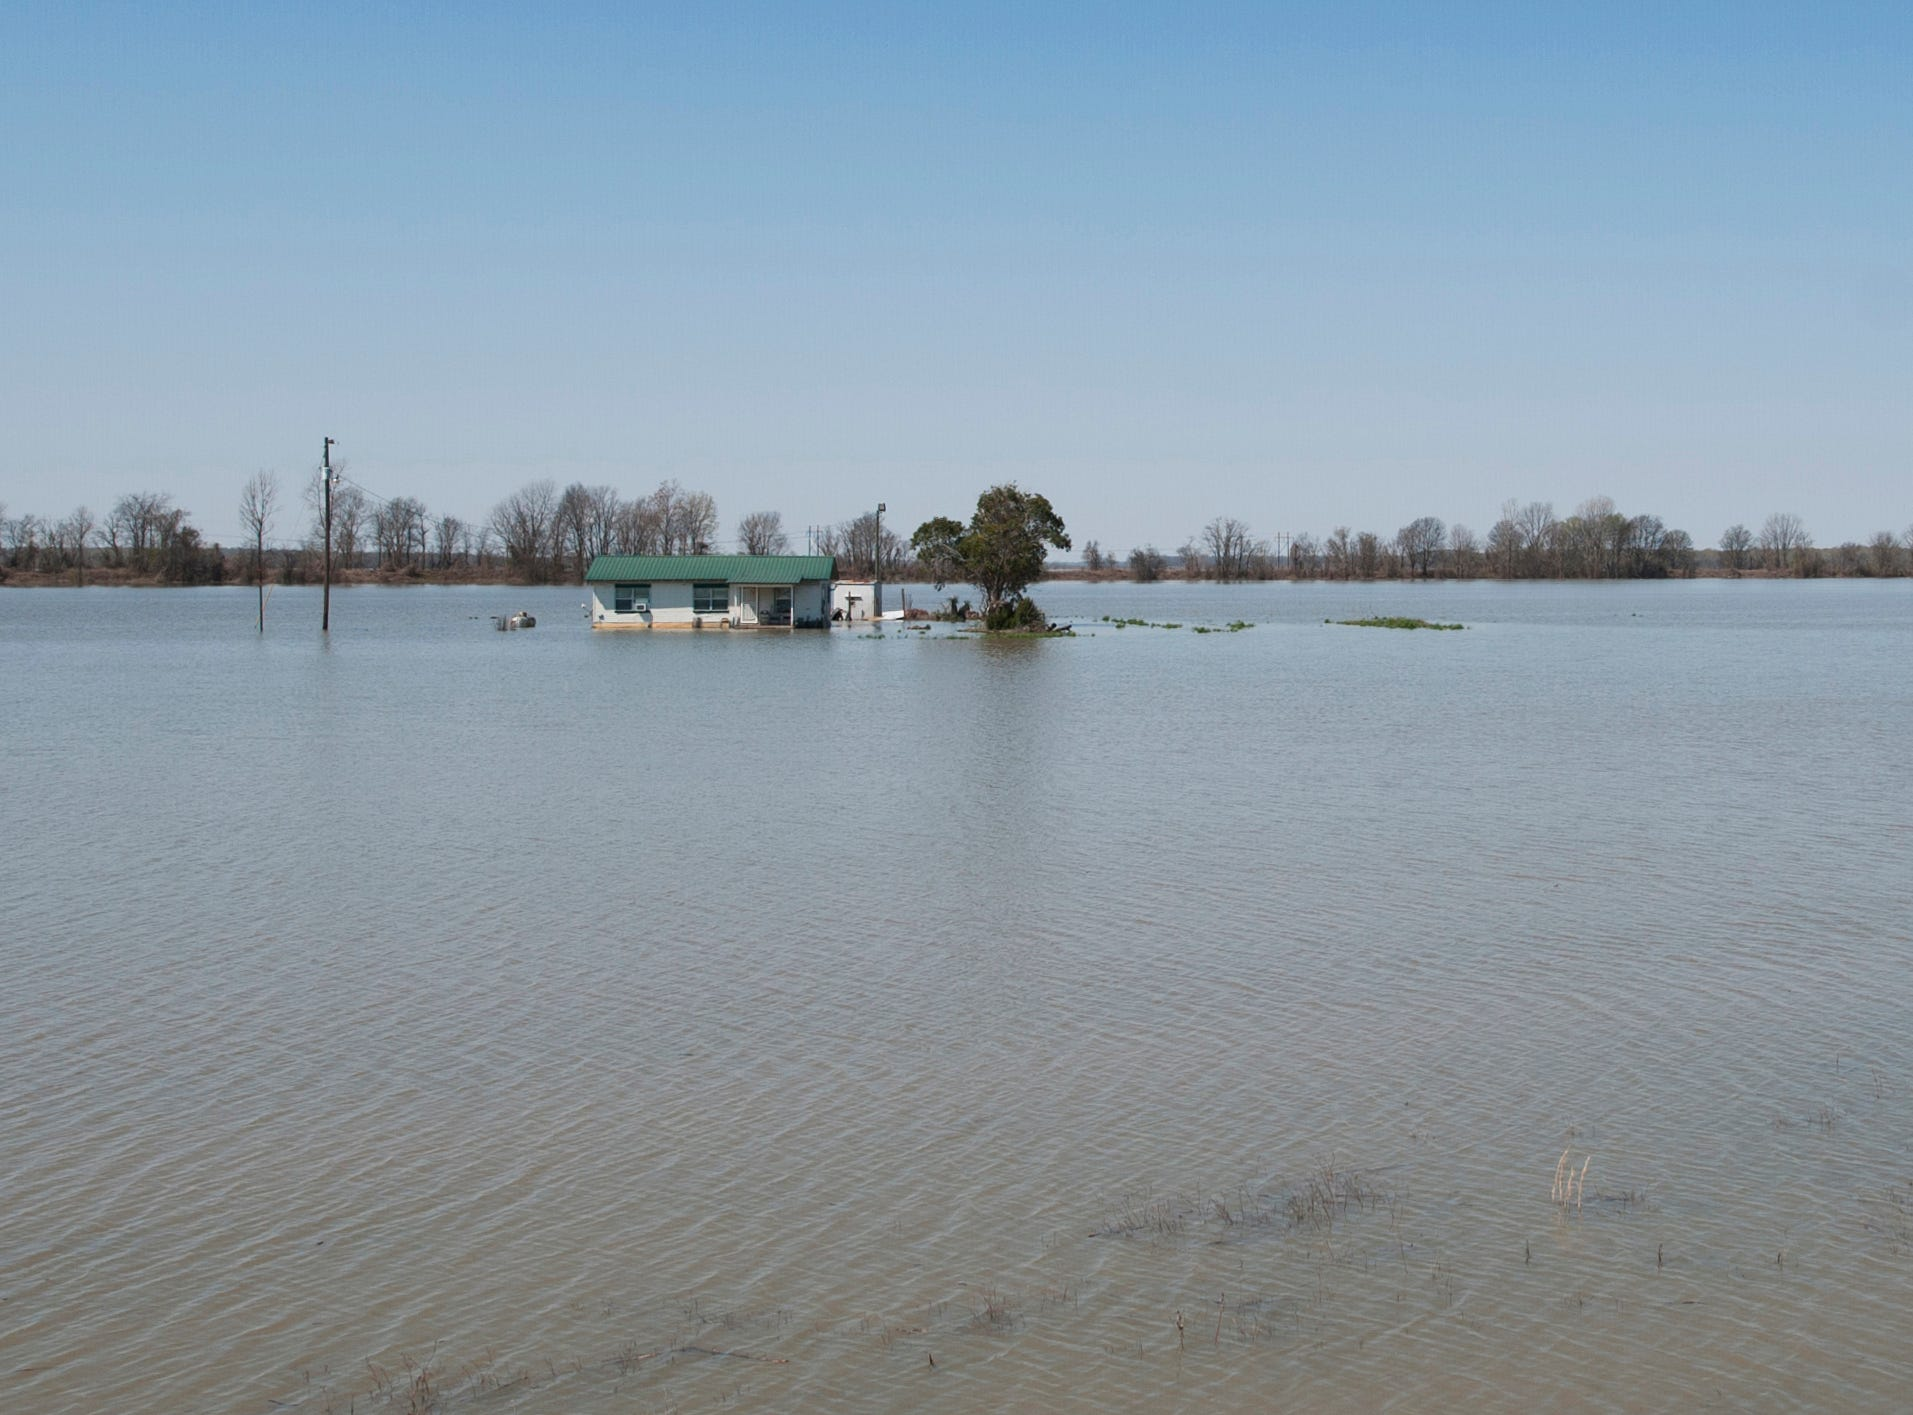 Just north of Valley Park in Issaquena County sits a lone house in a flooded cotton field. With backwater flooding, the slow rise of the water gives residents time to get out, but the disaster still comes.